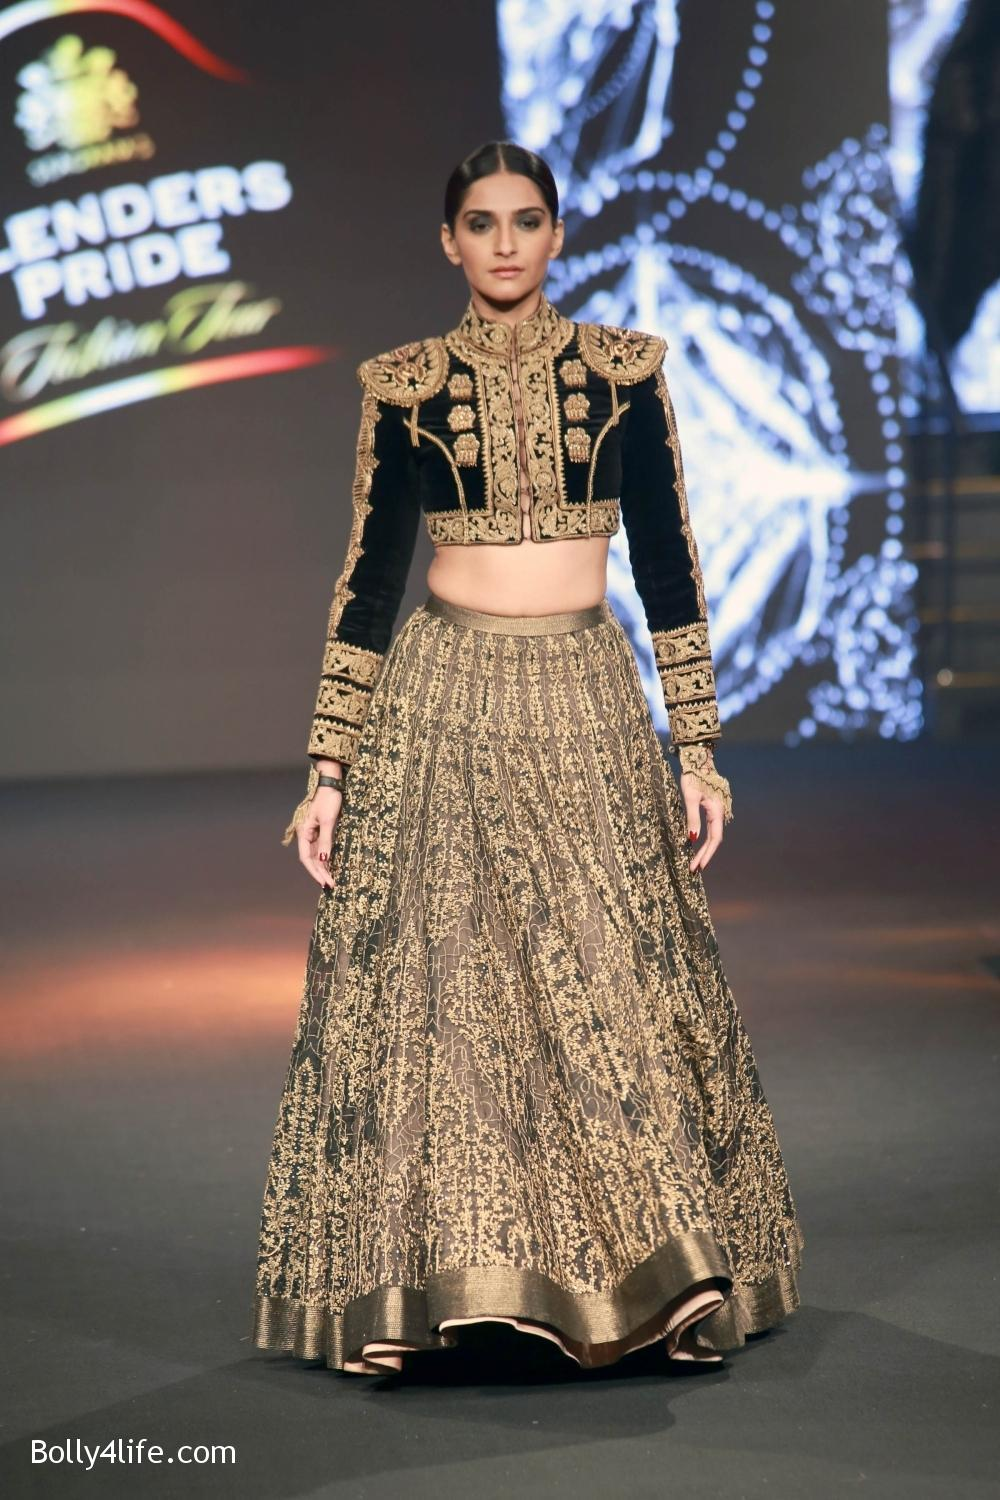 Sonam-Kapoor-walks-on-ramp-for-designers-Shantanu-and-Nikhils-show-during-the-Blenders-Pride-Fashion-Tour-2016-4.jpg